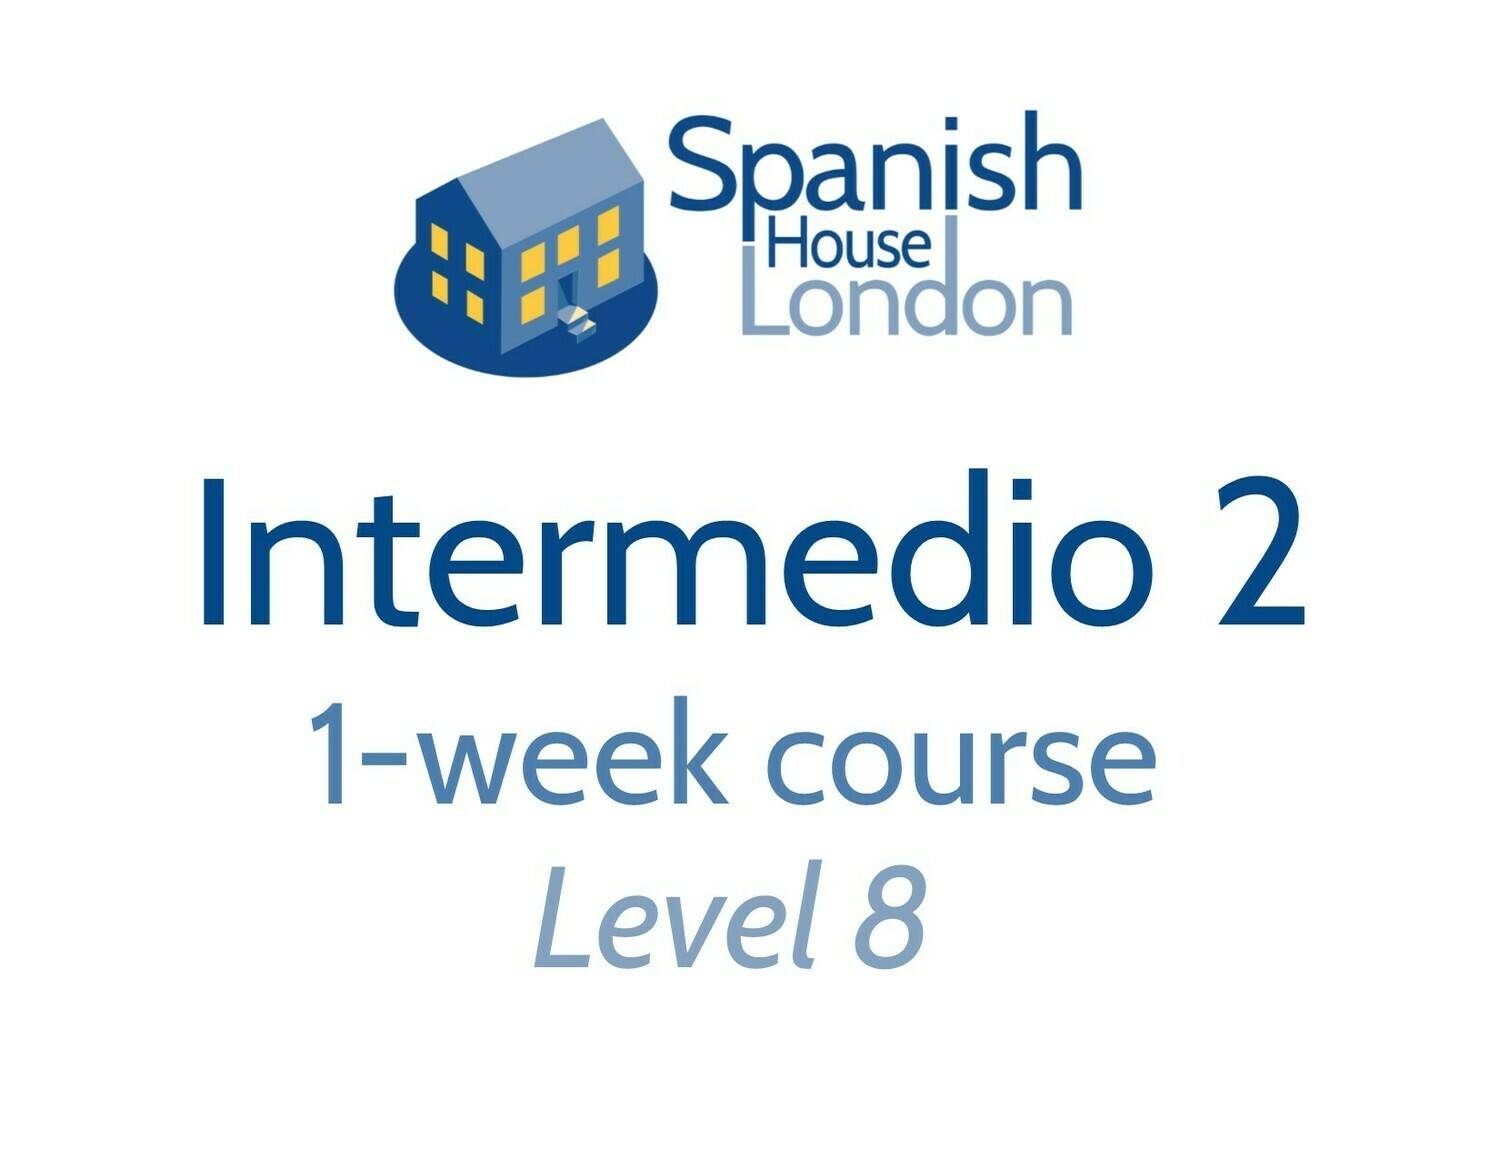 Intermedio 2 One-Week Intensive Course starting on 28th October at 10am in Clapham North